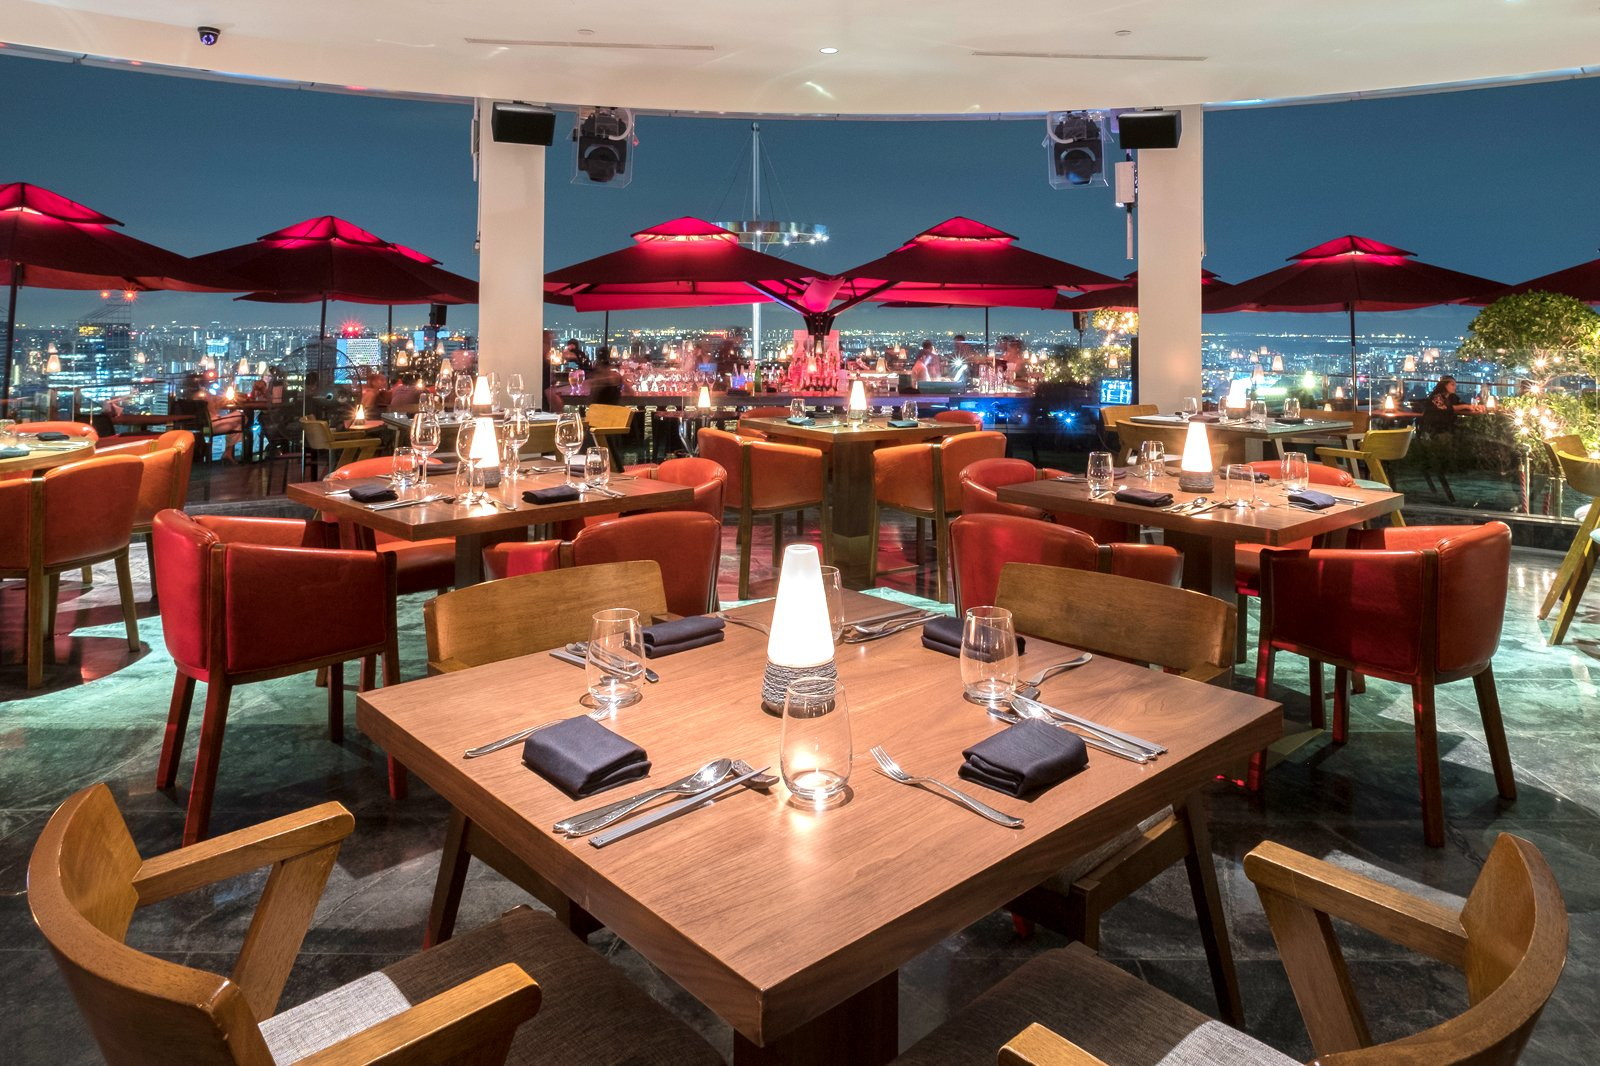 21 Best Restaurants at Marina Bay - The Best Places to Eat at Marina